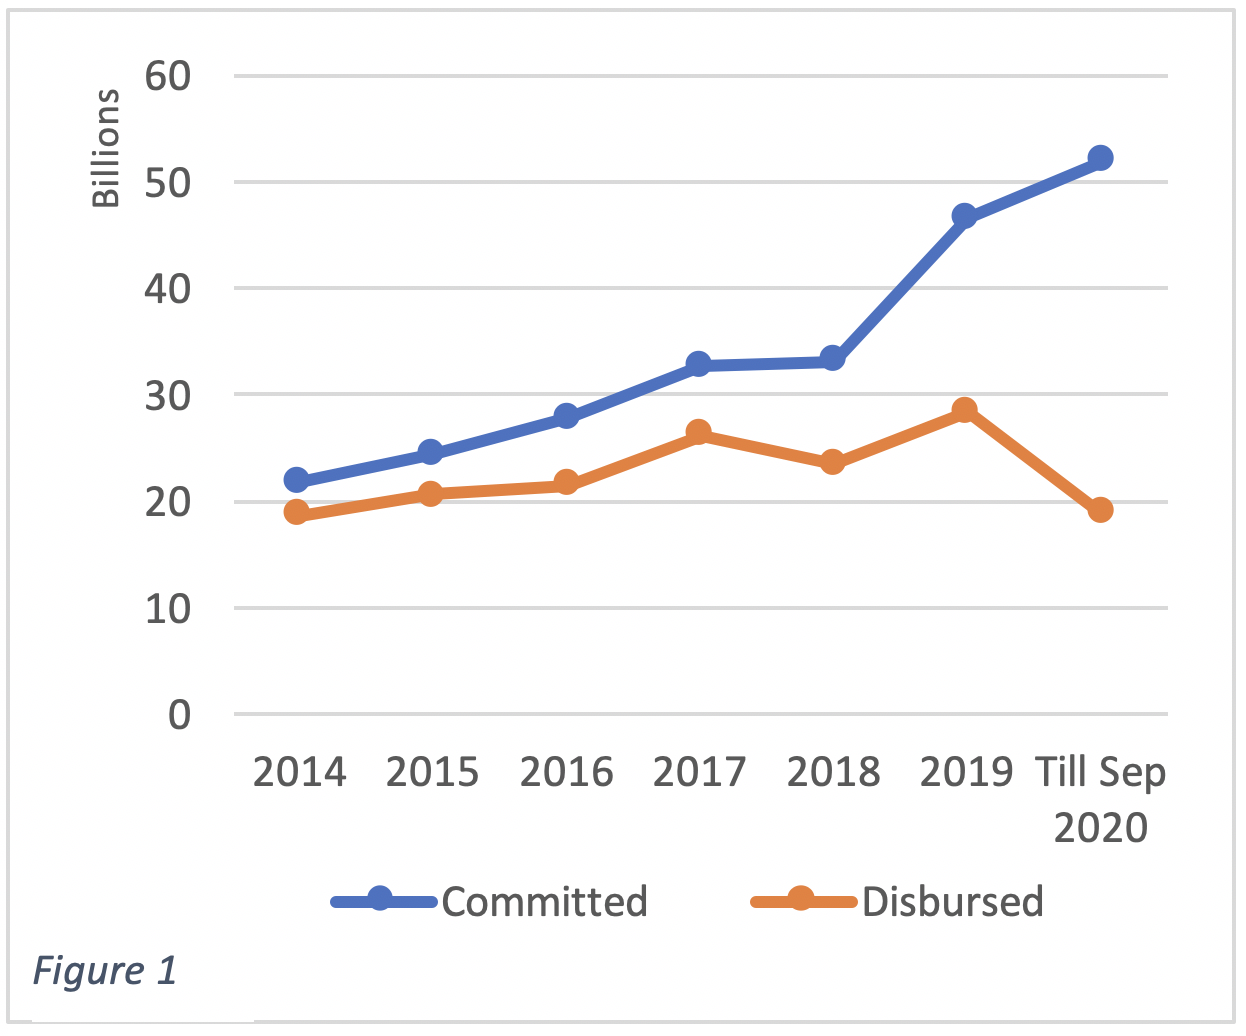 The gap between committed and disbursed funds has been growing